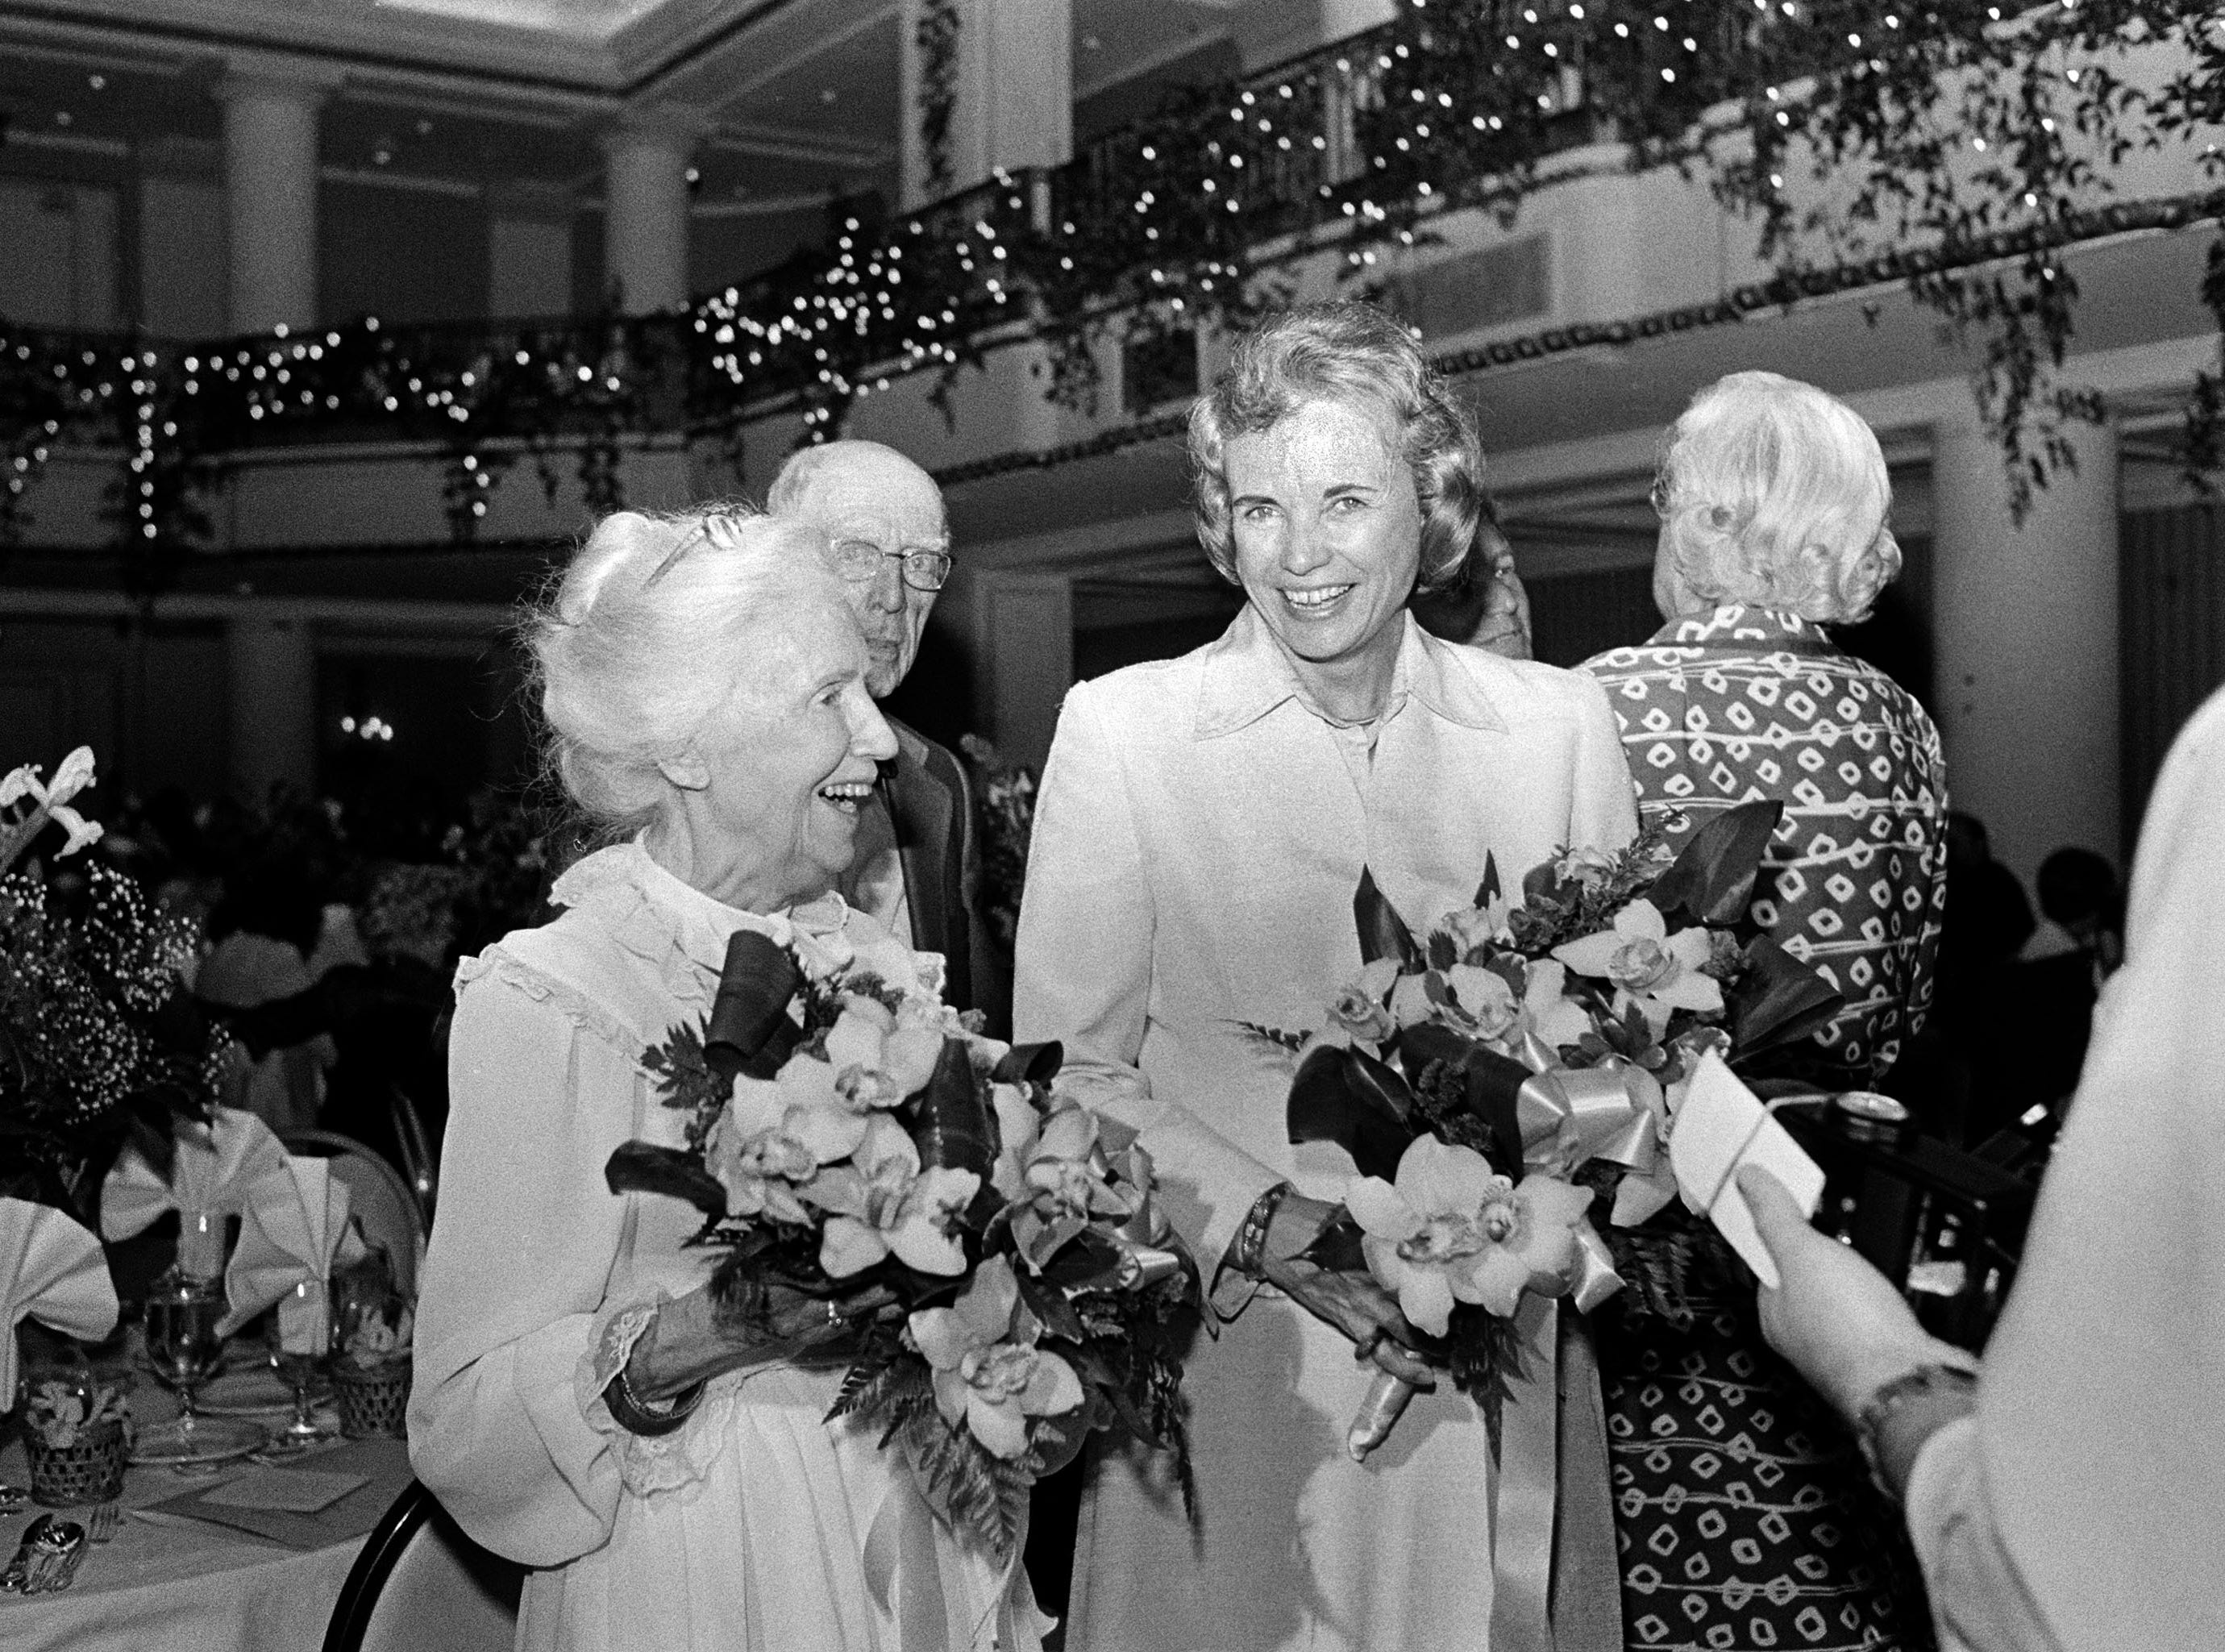 Supreme Court Justice Sandra Day O'Connor, right, and Margaret Kuhn, founder of the Gray Panthers, pose with bouquets of flowers after receiving awards at the 1982 Gimbel Awards luncheon in Philadelphia, May 5, 1982.